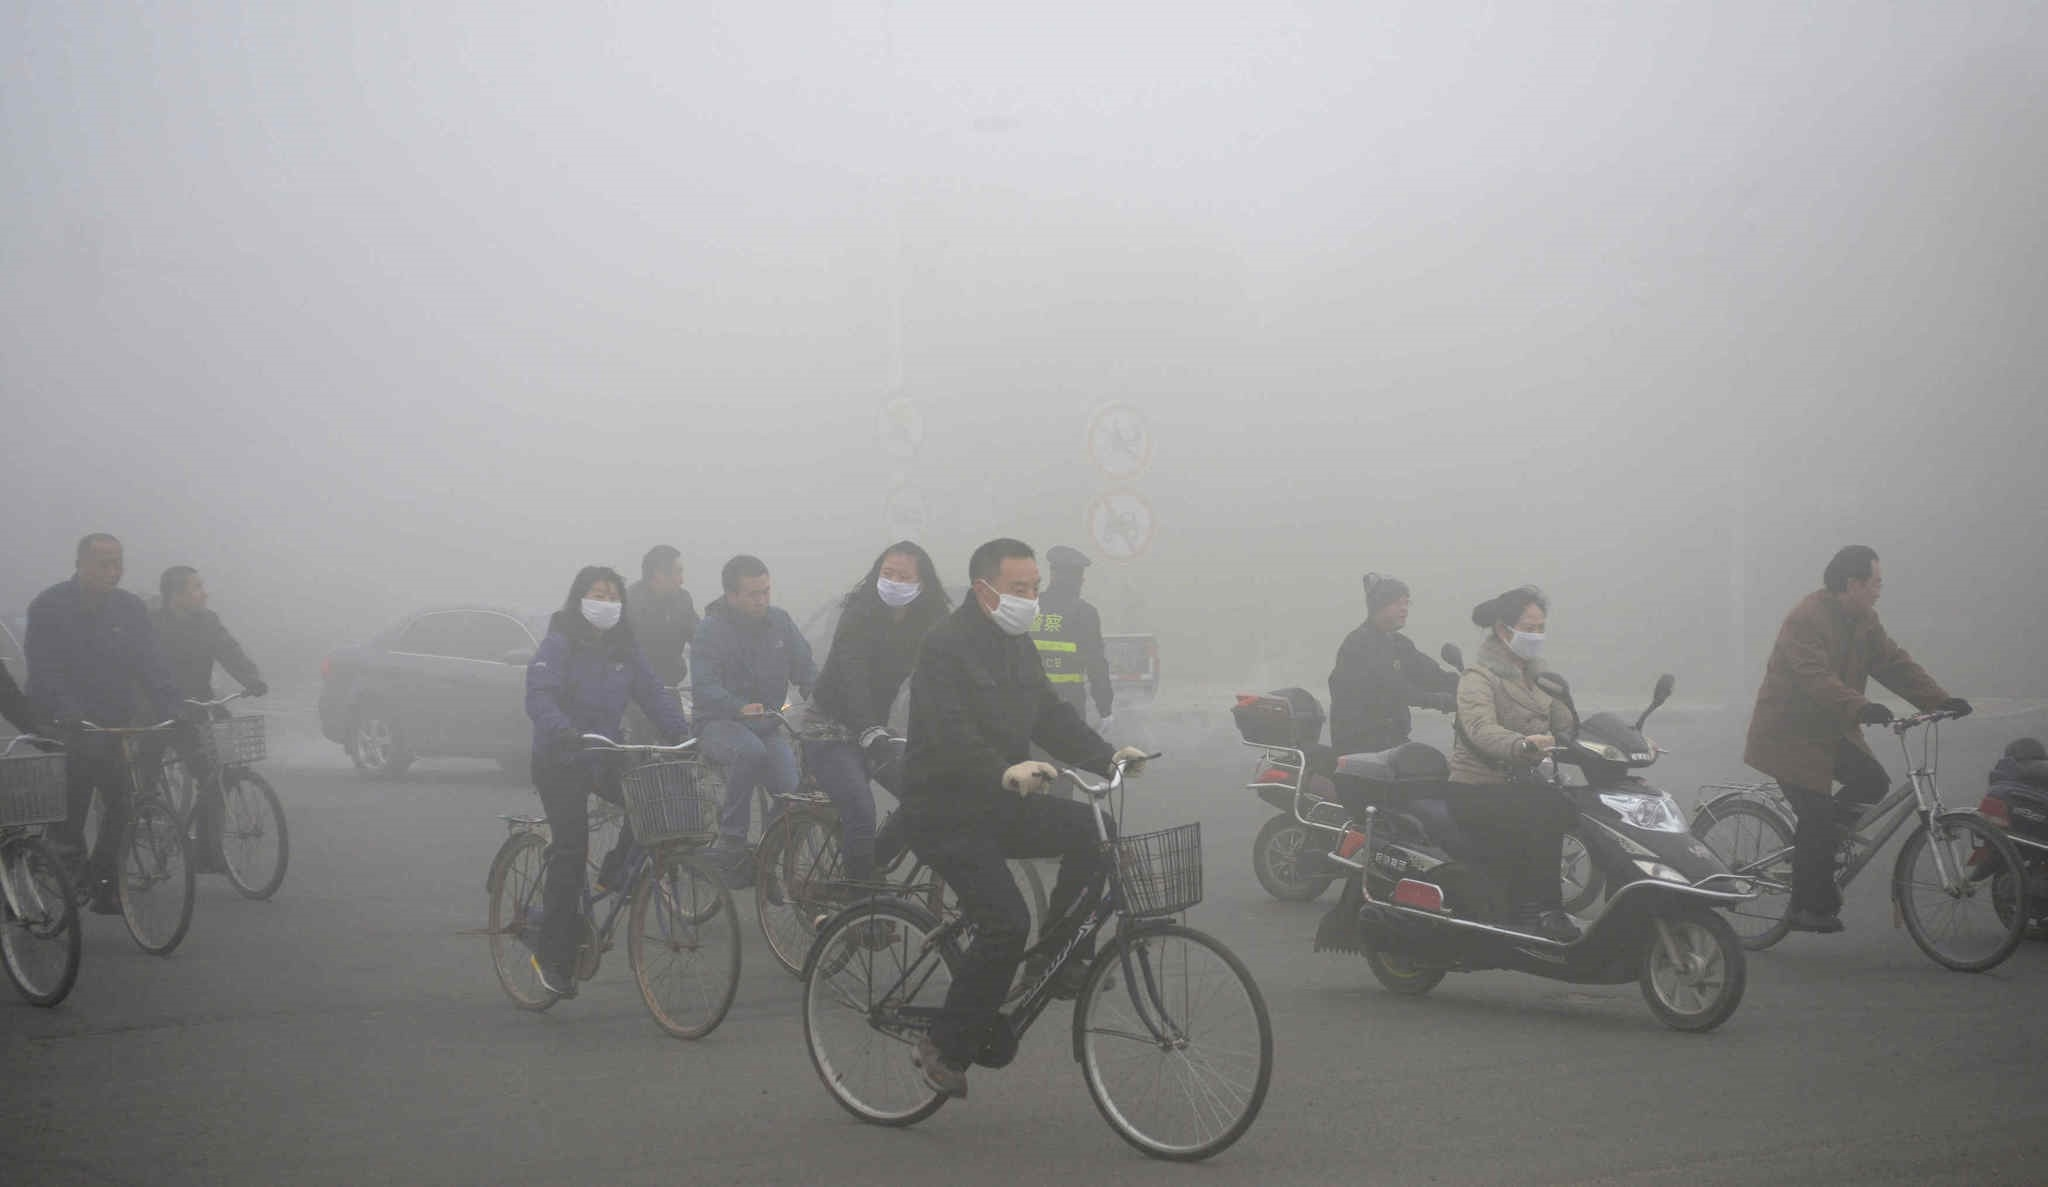 People ride along a street on a smoggy day in Daqing, Heilongjiang province of China.